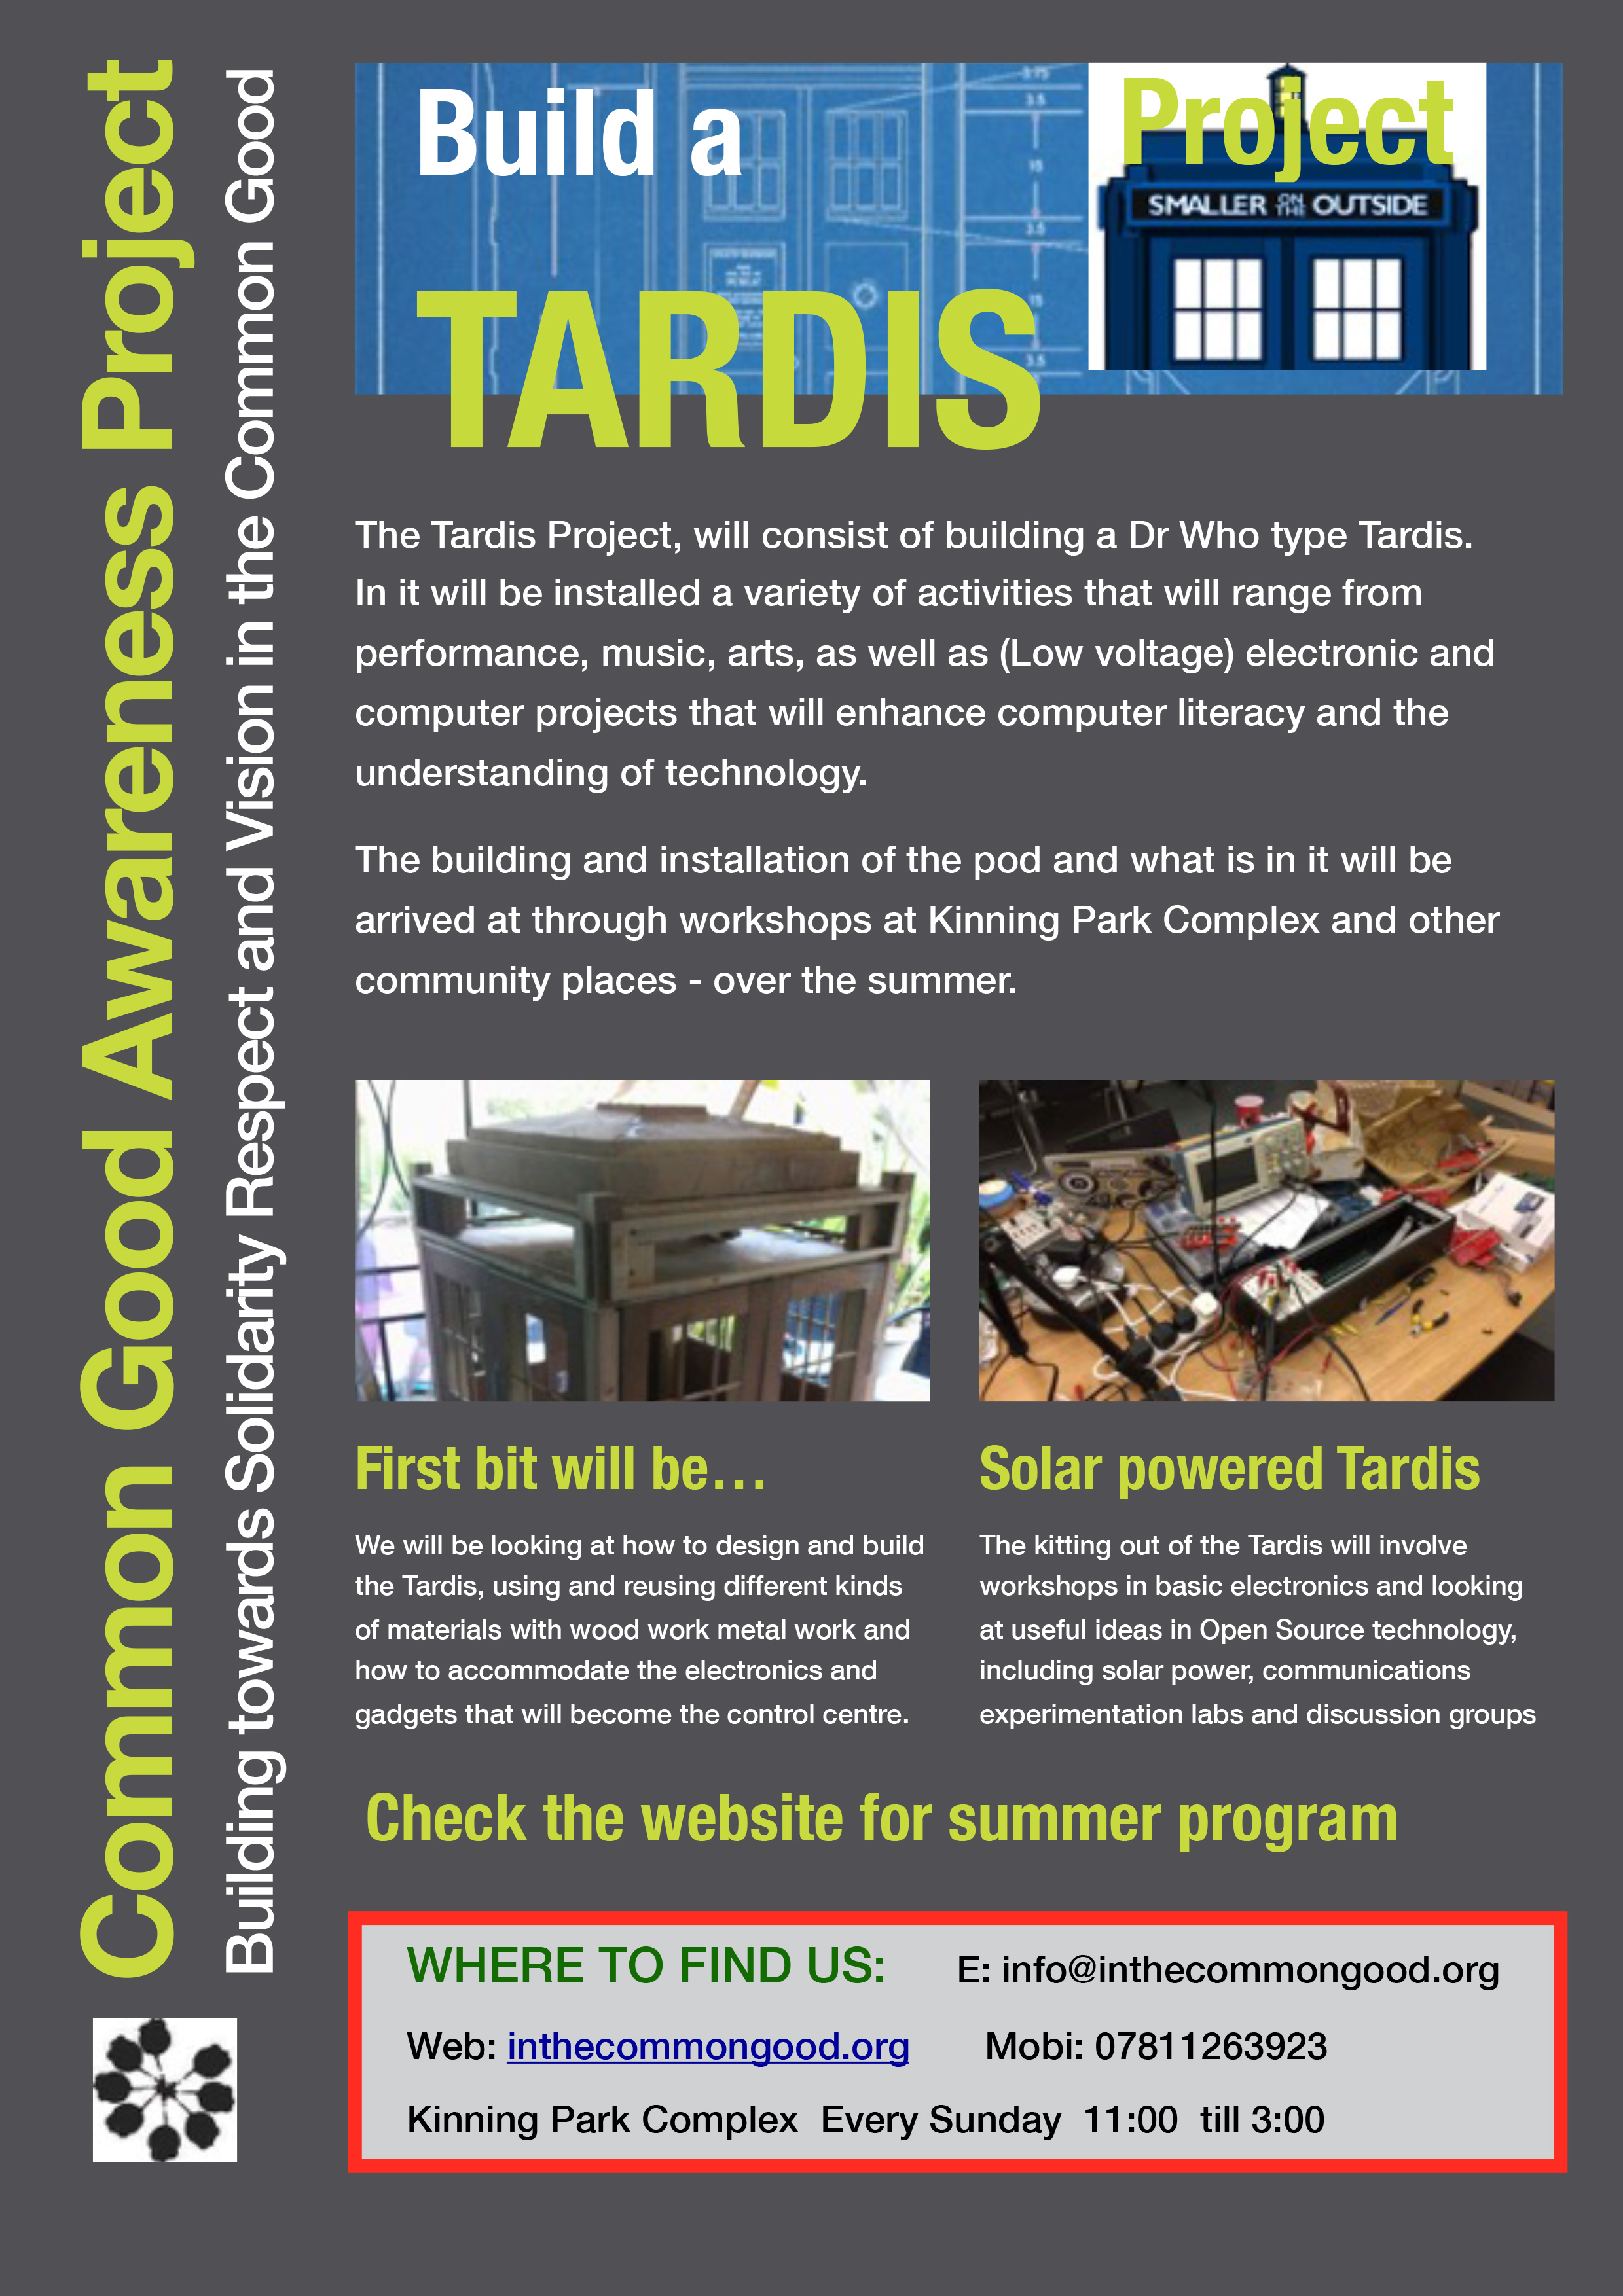 Tardis Project – How to get involved